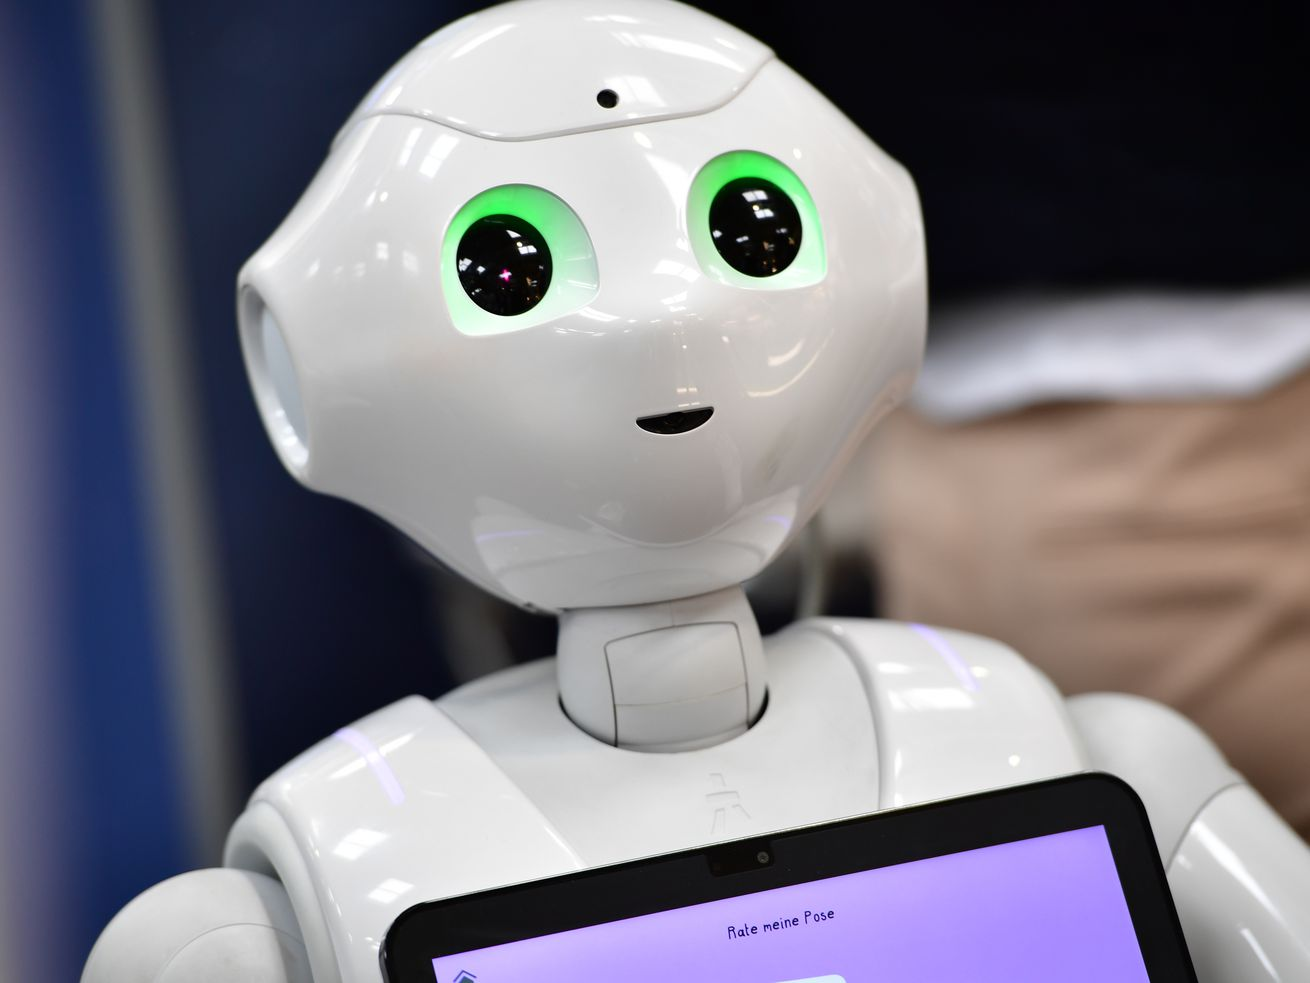 Humanoid robots probably won't be our biggest problem. The biggest problem will be background services we rely on without really thinking about it.